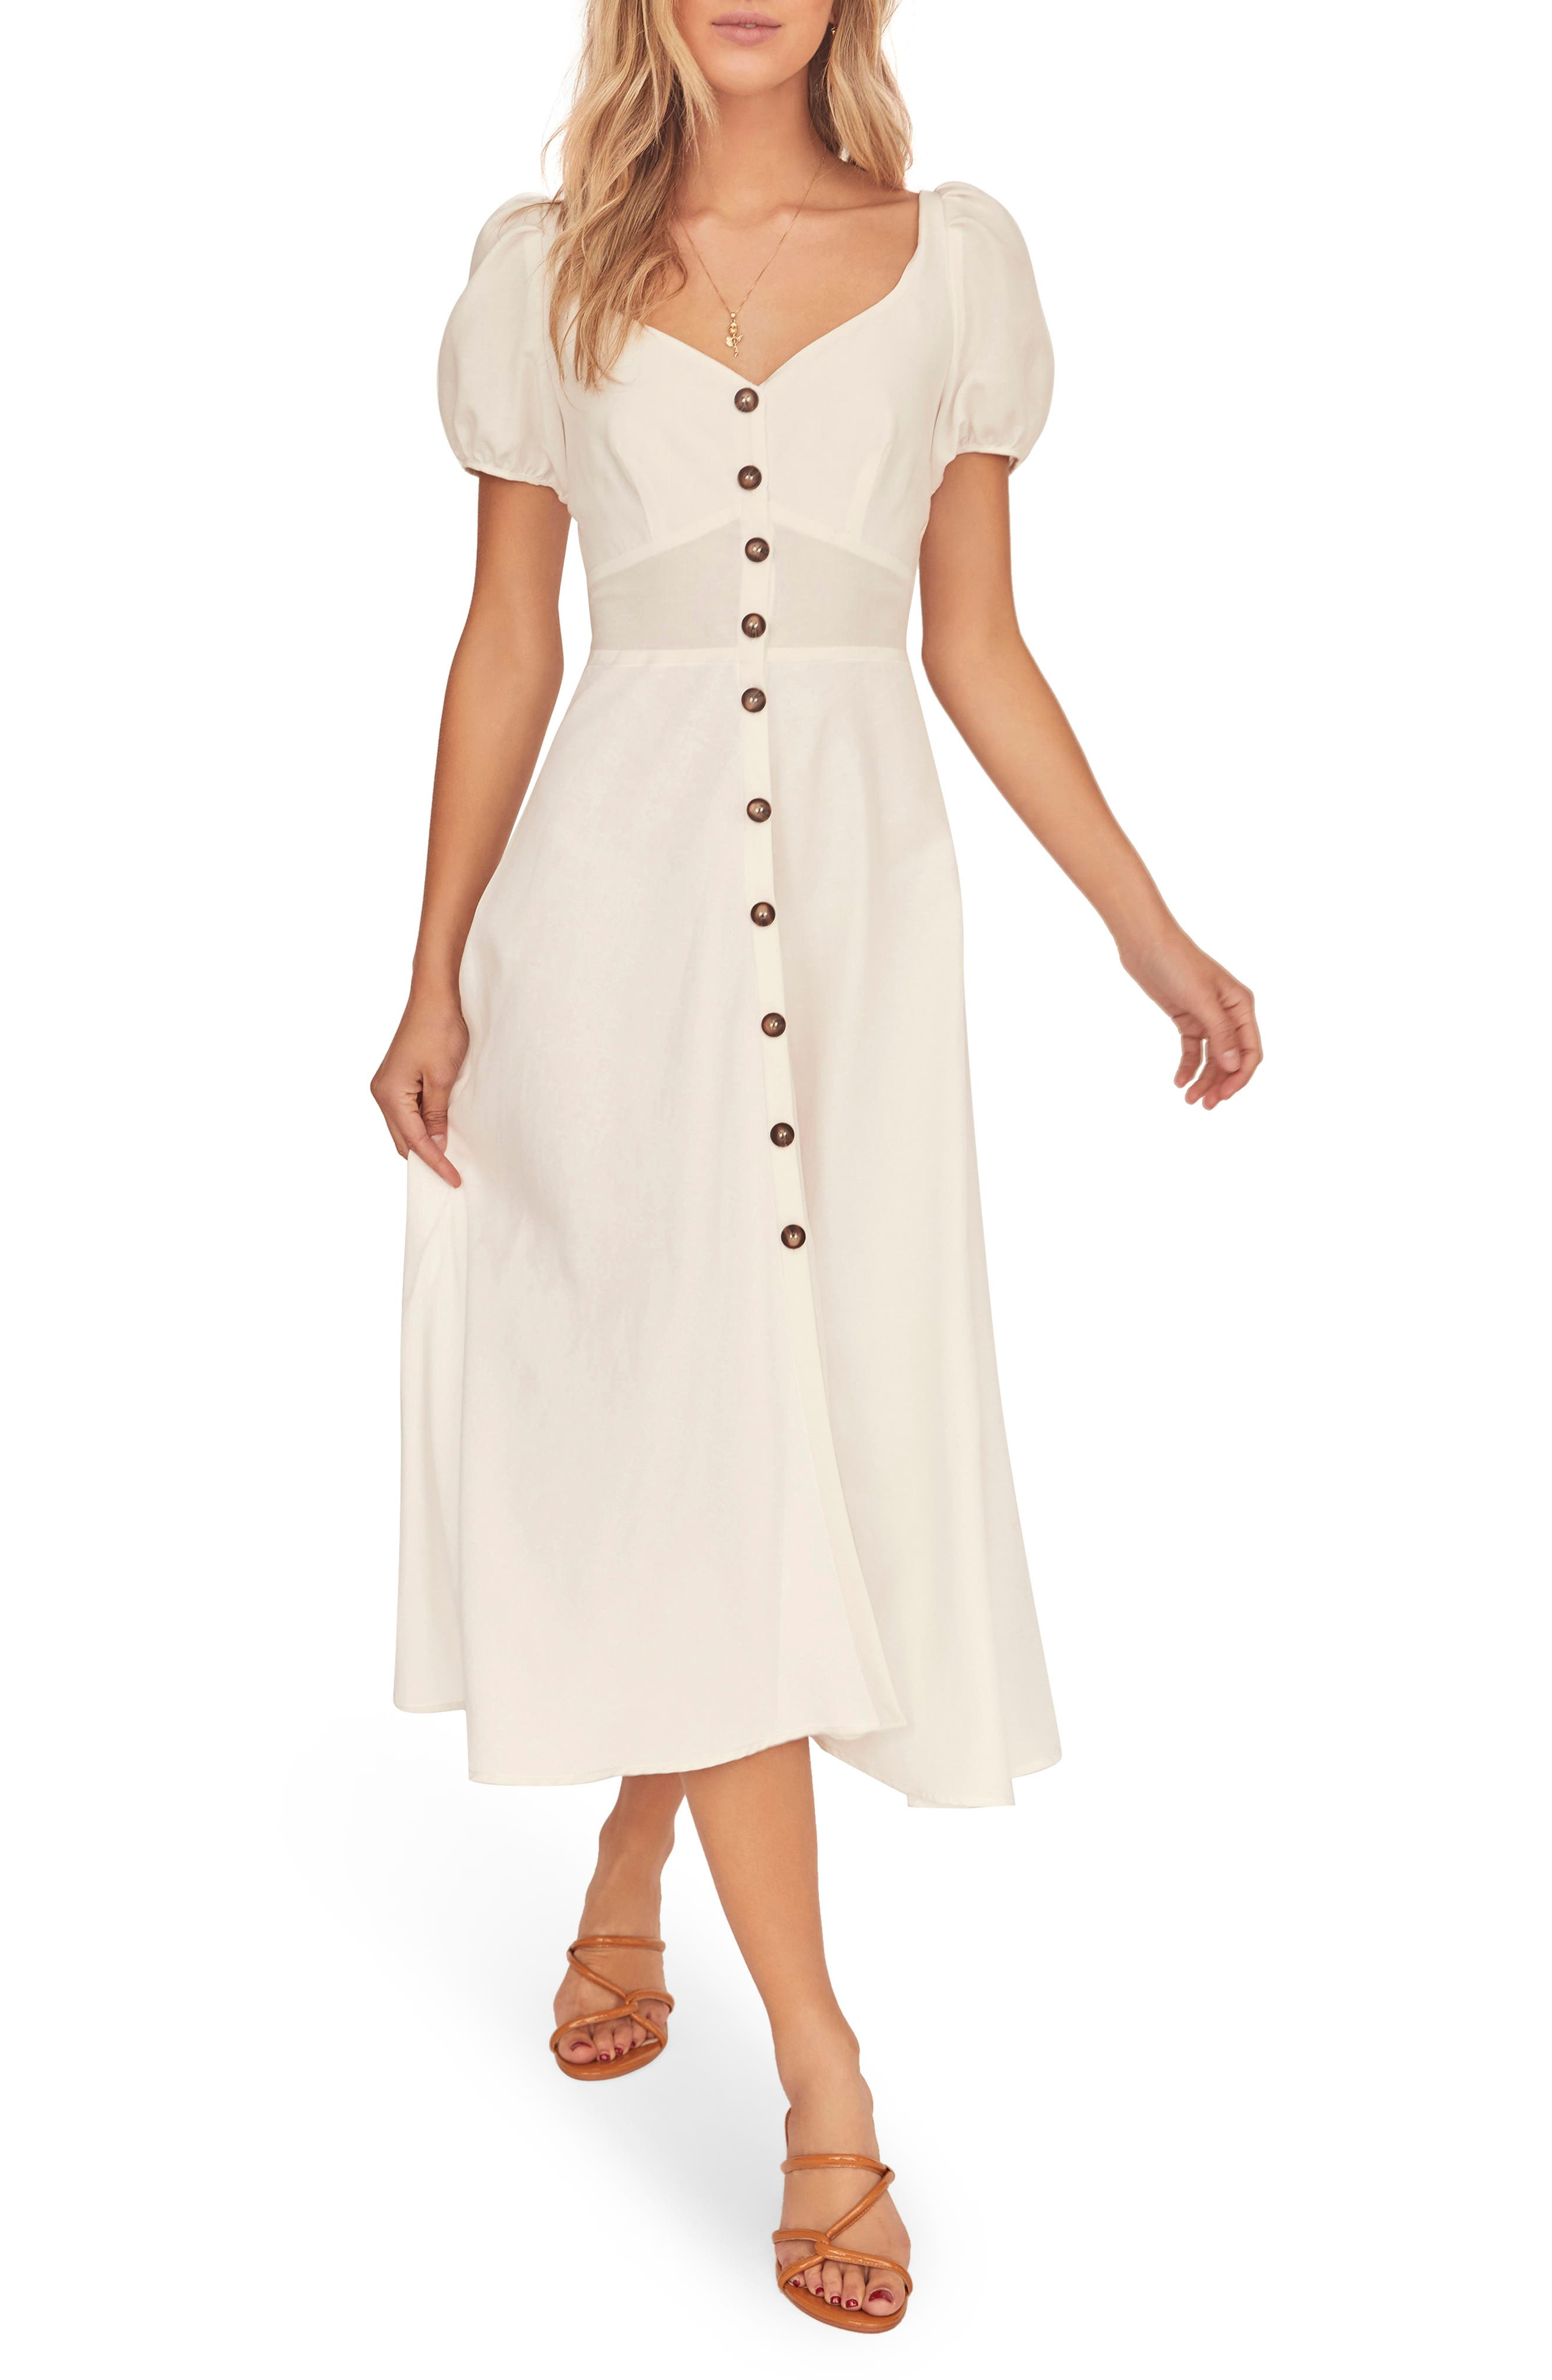 70s Outfits – 70s Style Ideas for Women Womens Astr The Label Pippa Midi Dress Size Small - White $138.00 AT vintagedancer.com